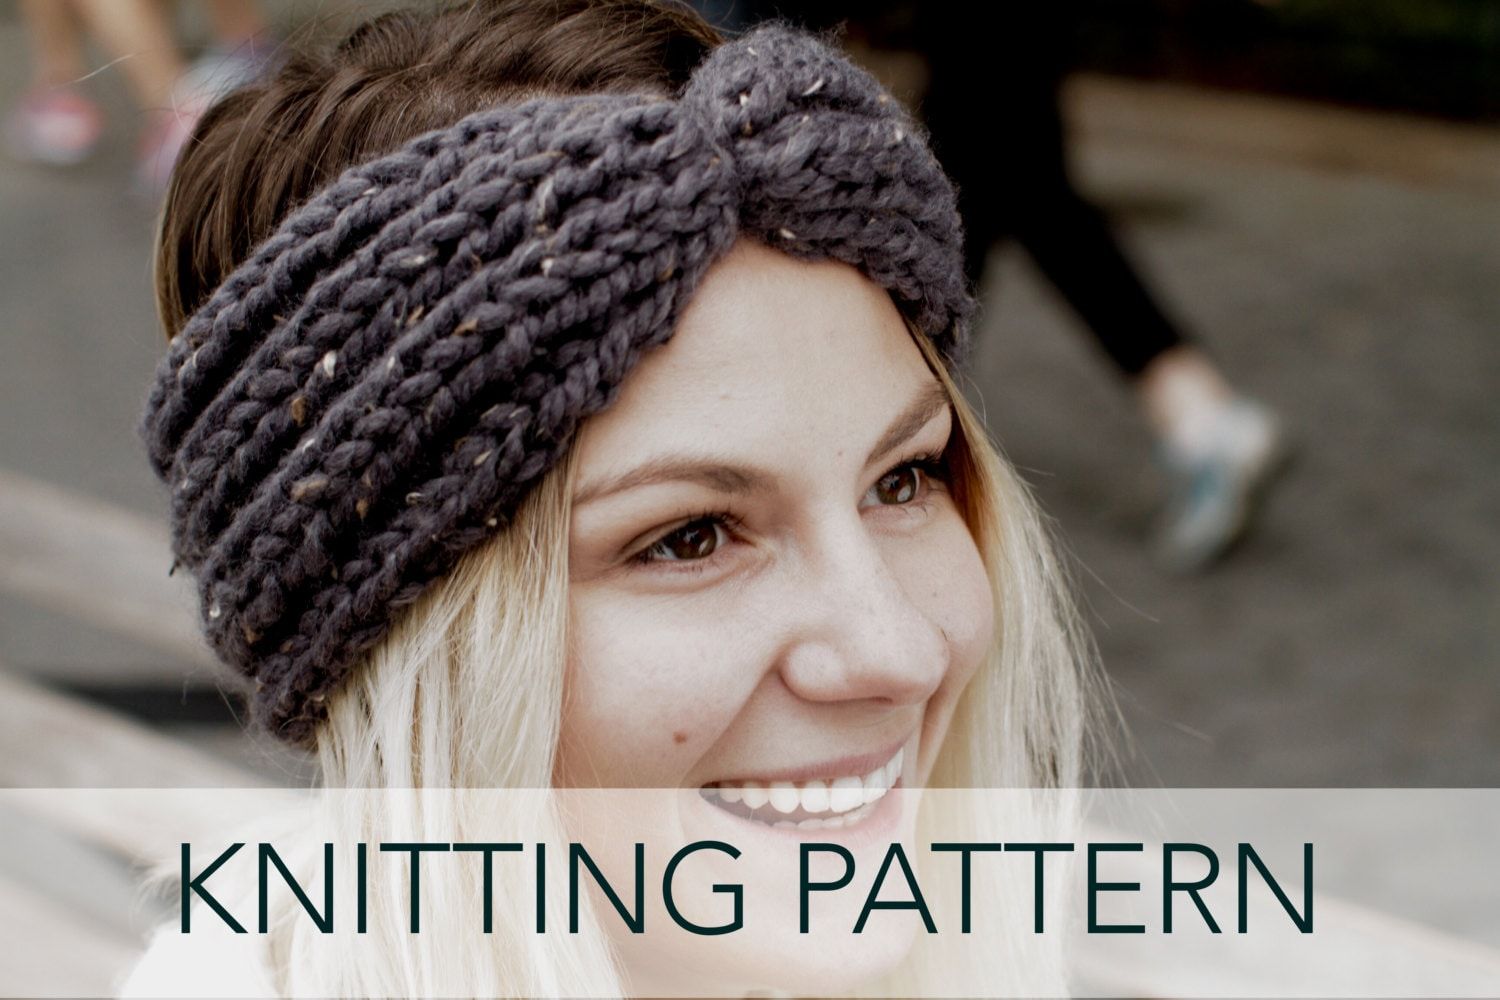 Knitting Pattern // Chunky Knit Turban Headband Ear Warmer // Globe ...